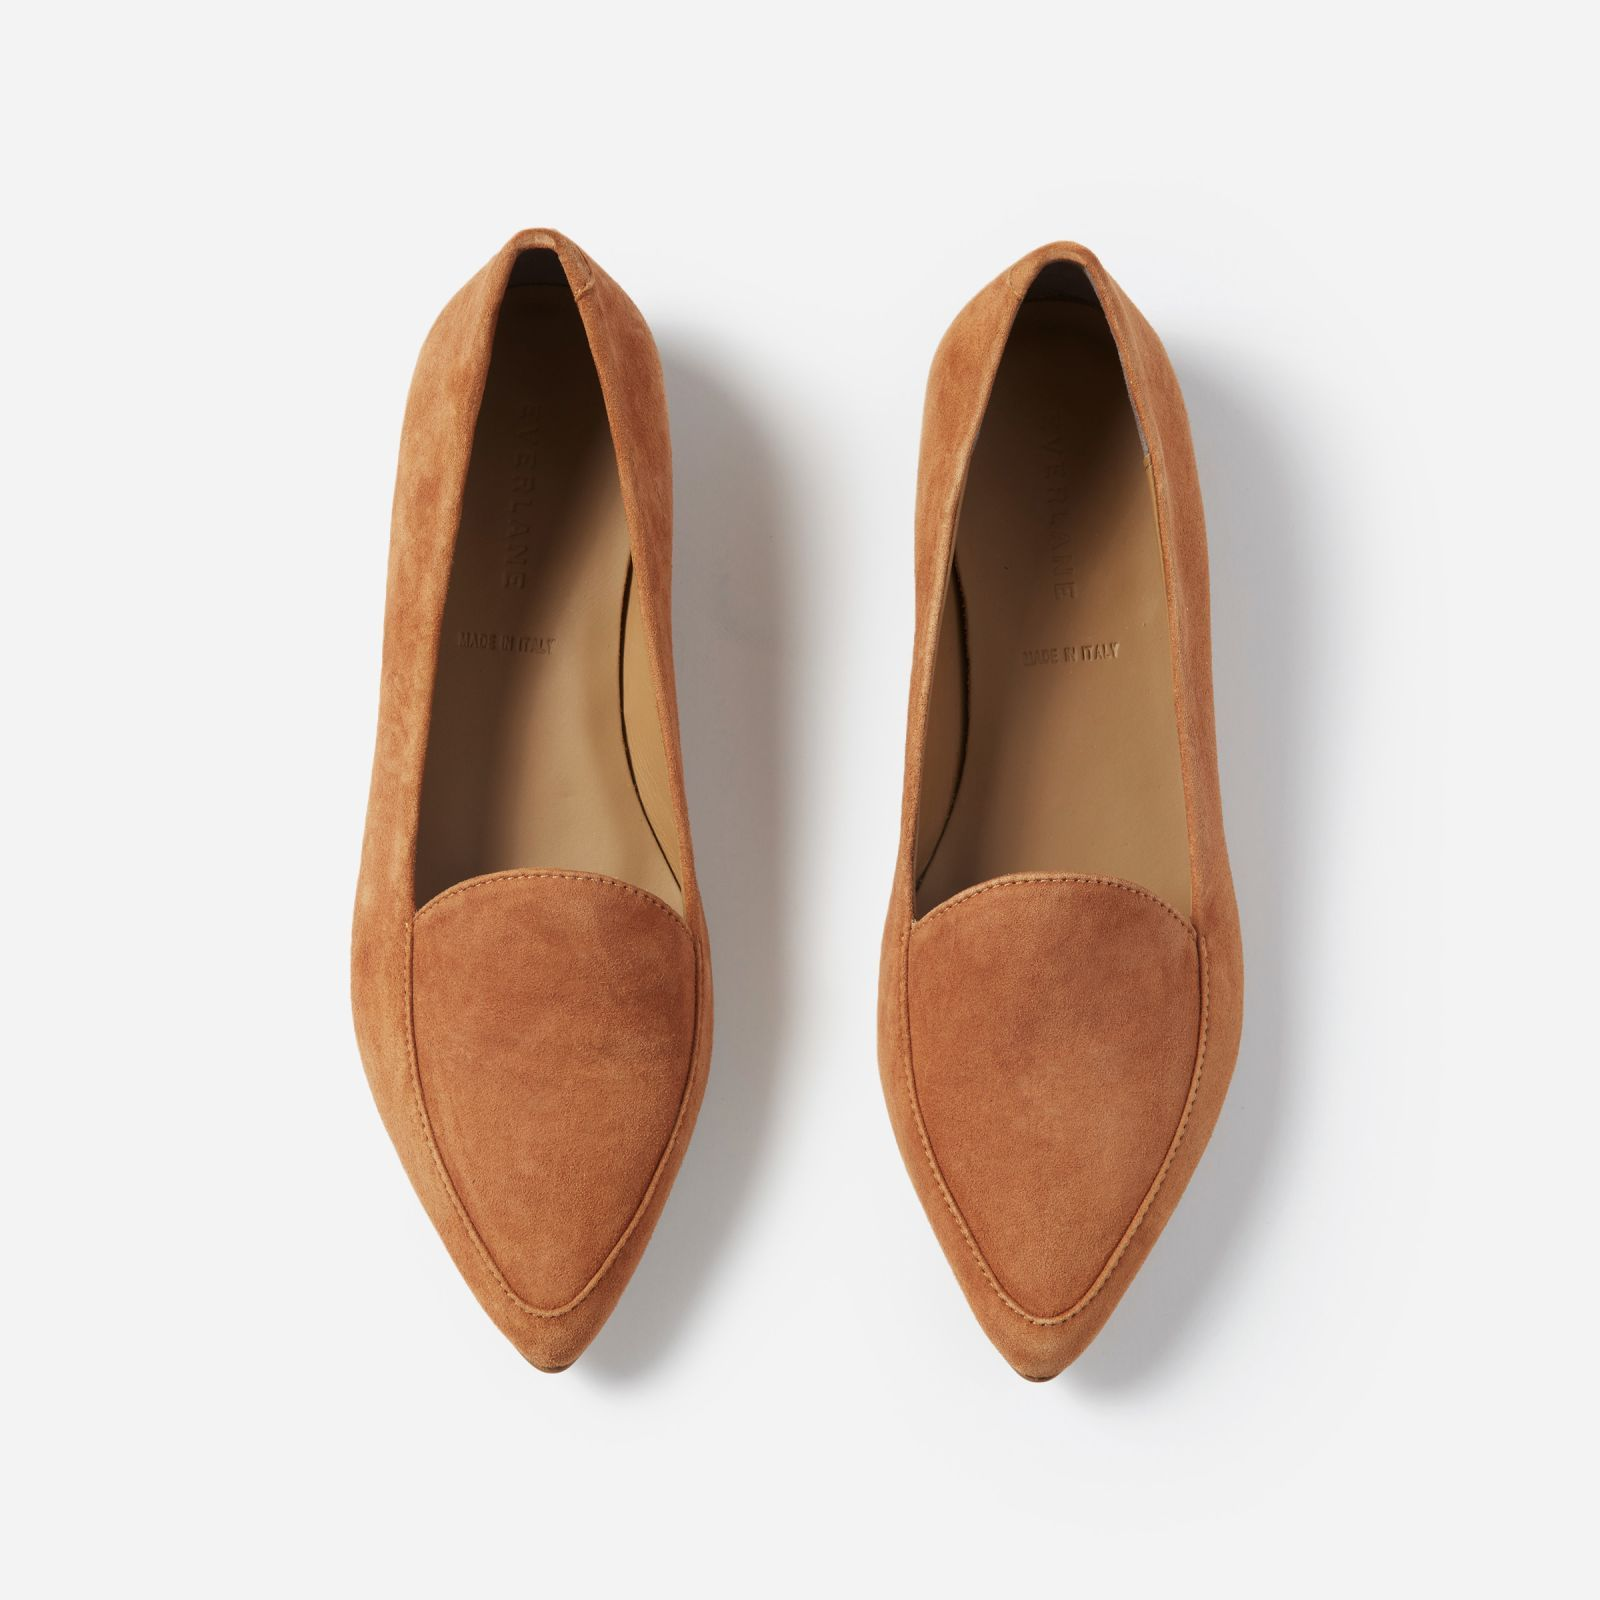 Women s Leather Flats by Everlane in Cognac Suede 8b950fe18a9d